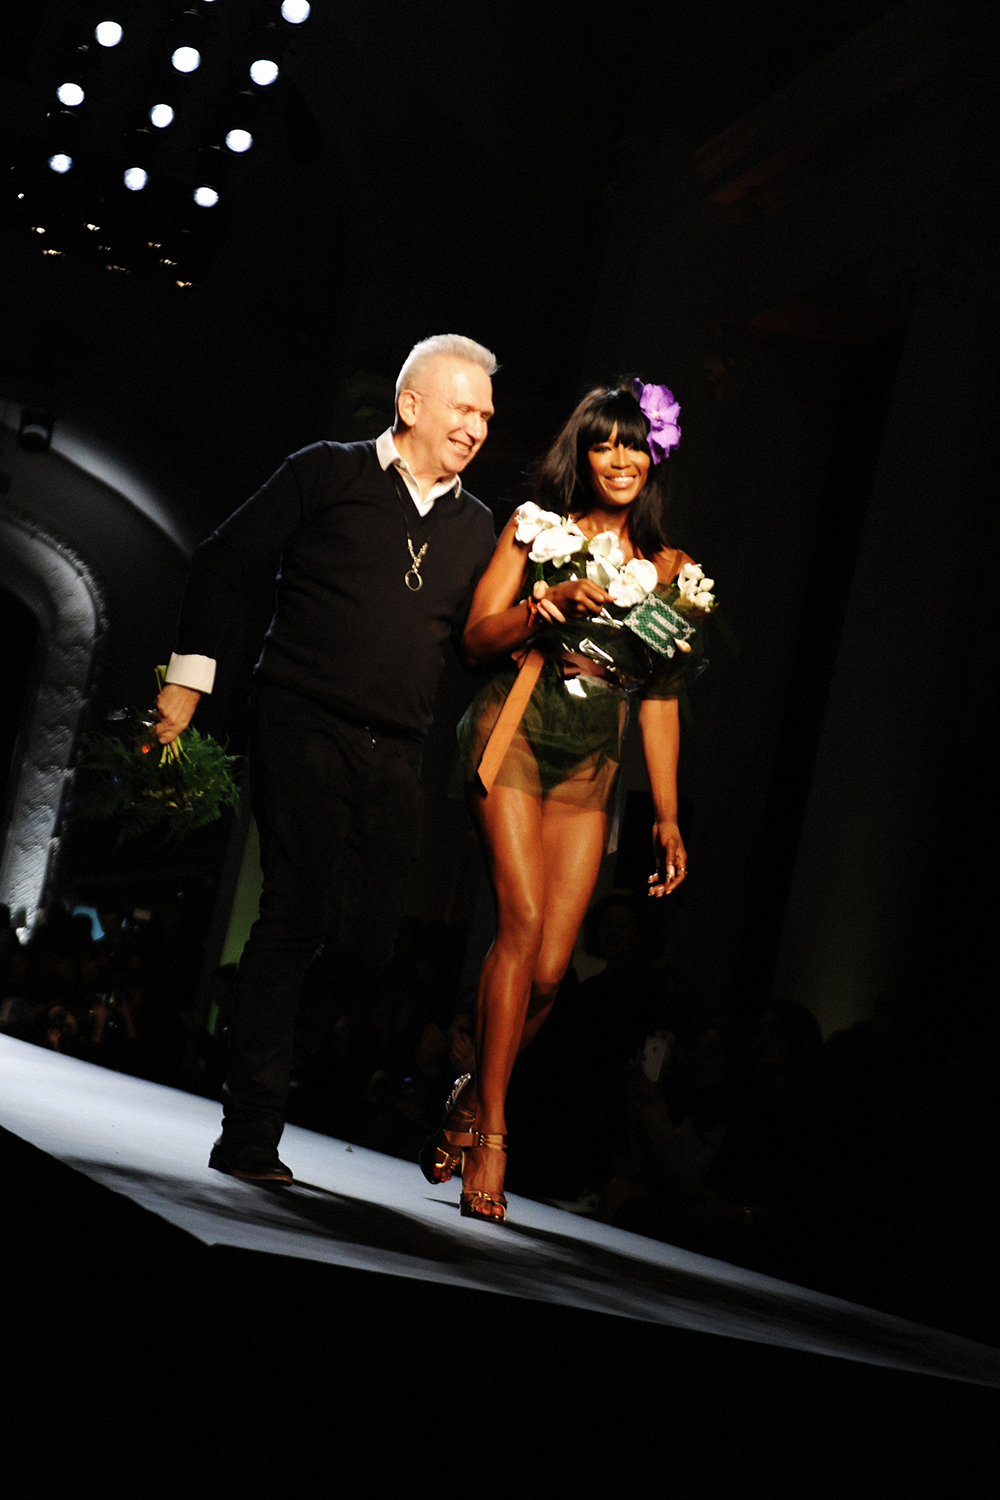 JEAN PAUL GAULTIER HAUTE COUTURE SPRING-SUMMER 2015 PARIS